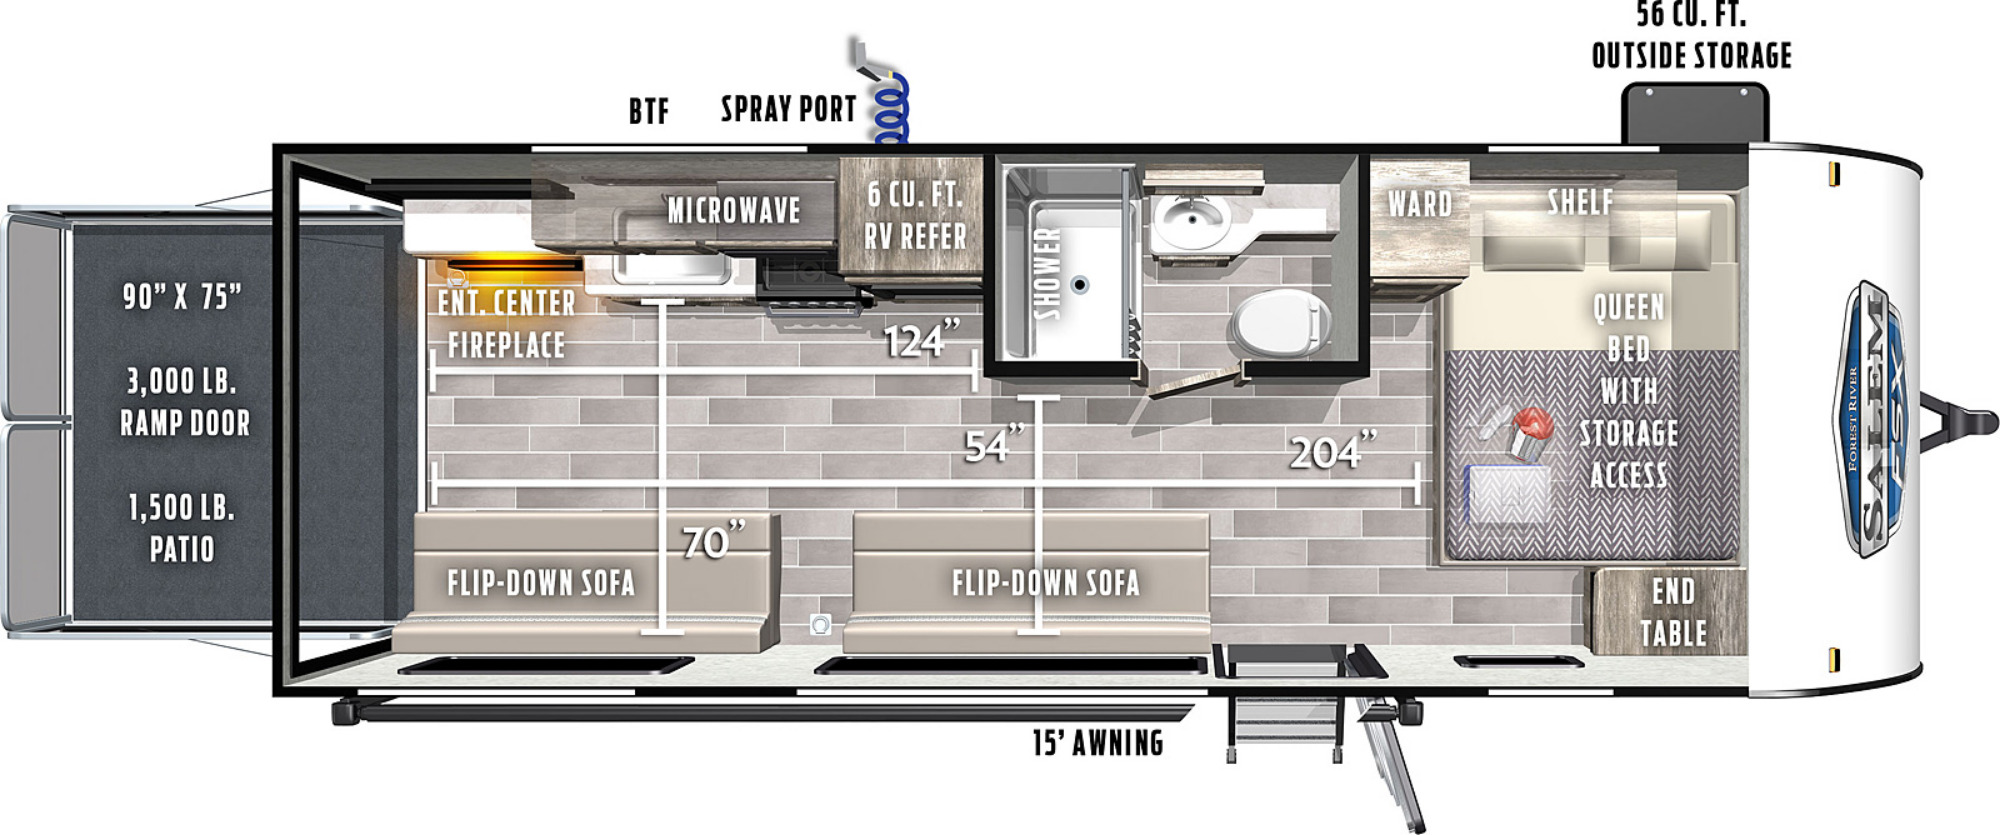 View Floor Plan for 2021 FOREST RIVER SALEM FSX 190RTX